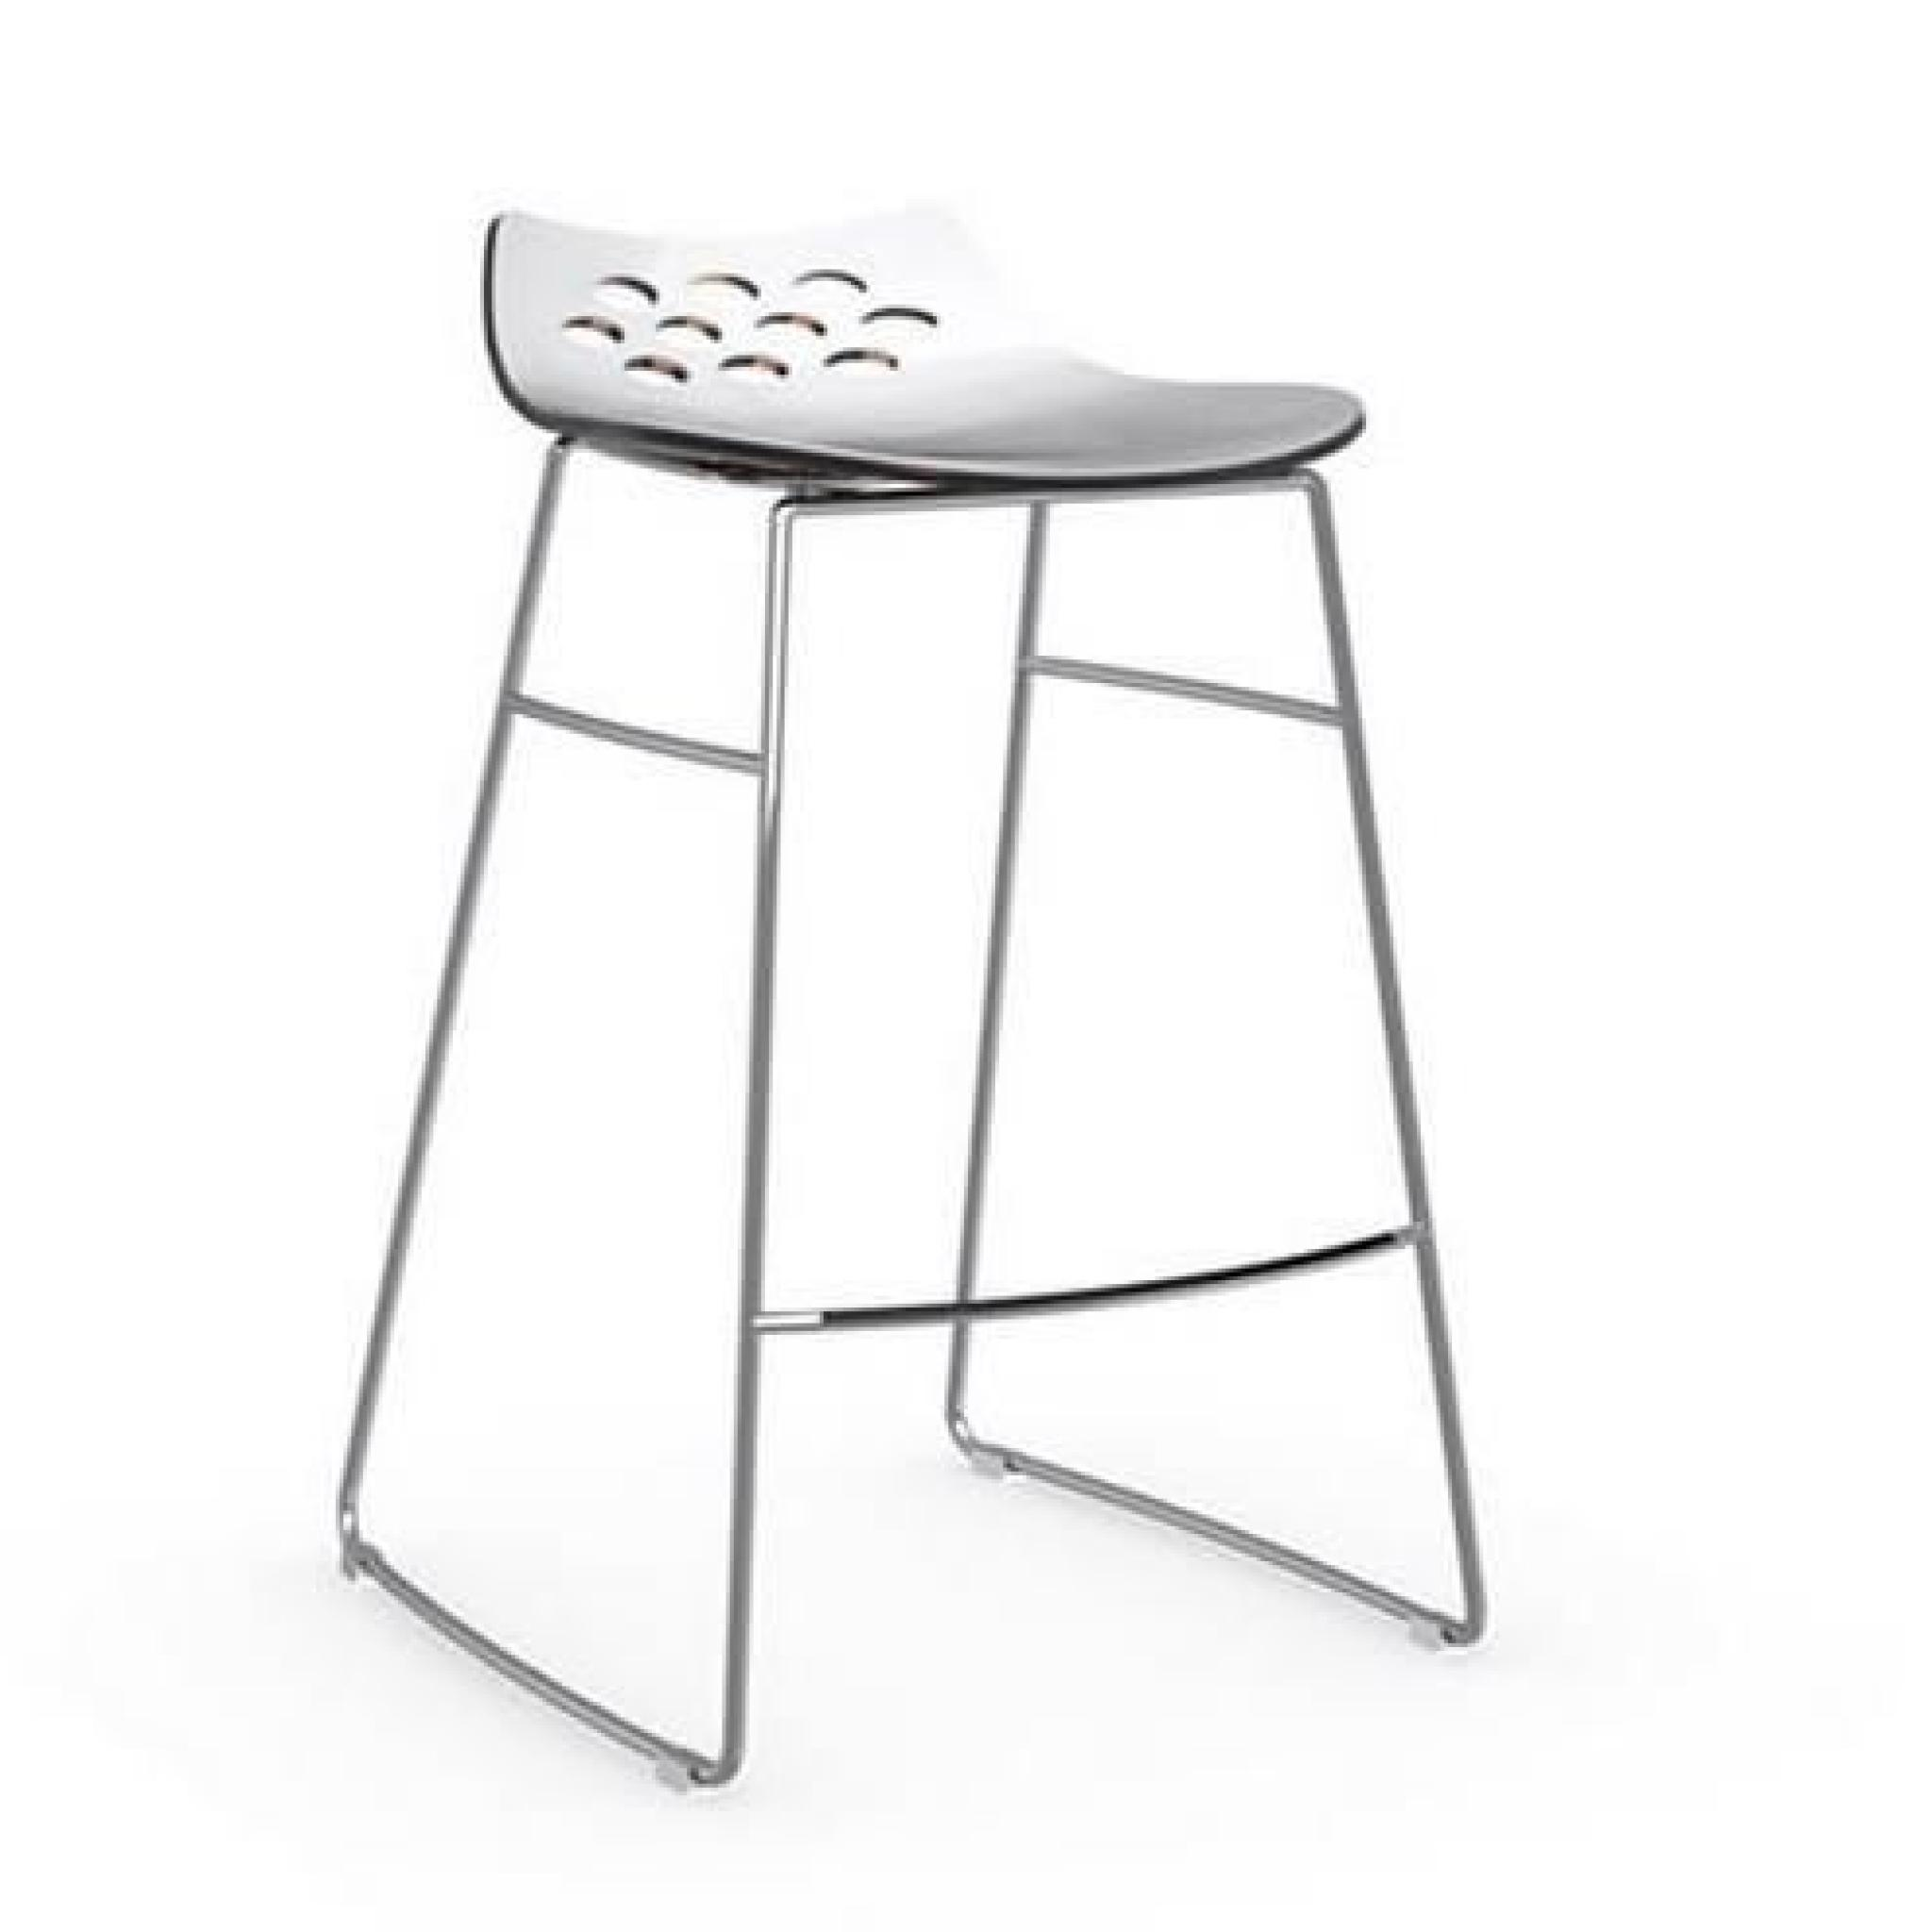 Tabouret de bar design jam de calligaris orange et blanc - Tabouret de bar couleur ...